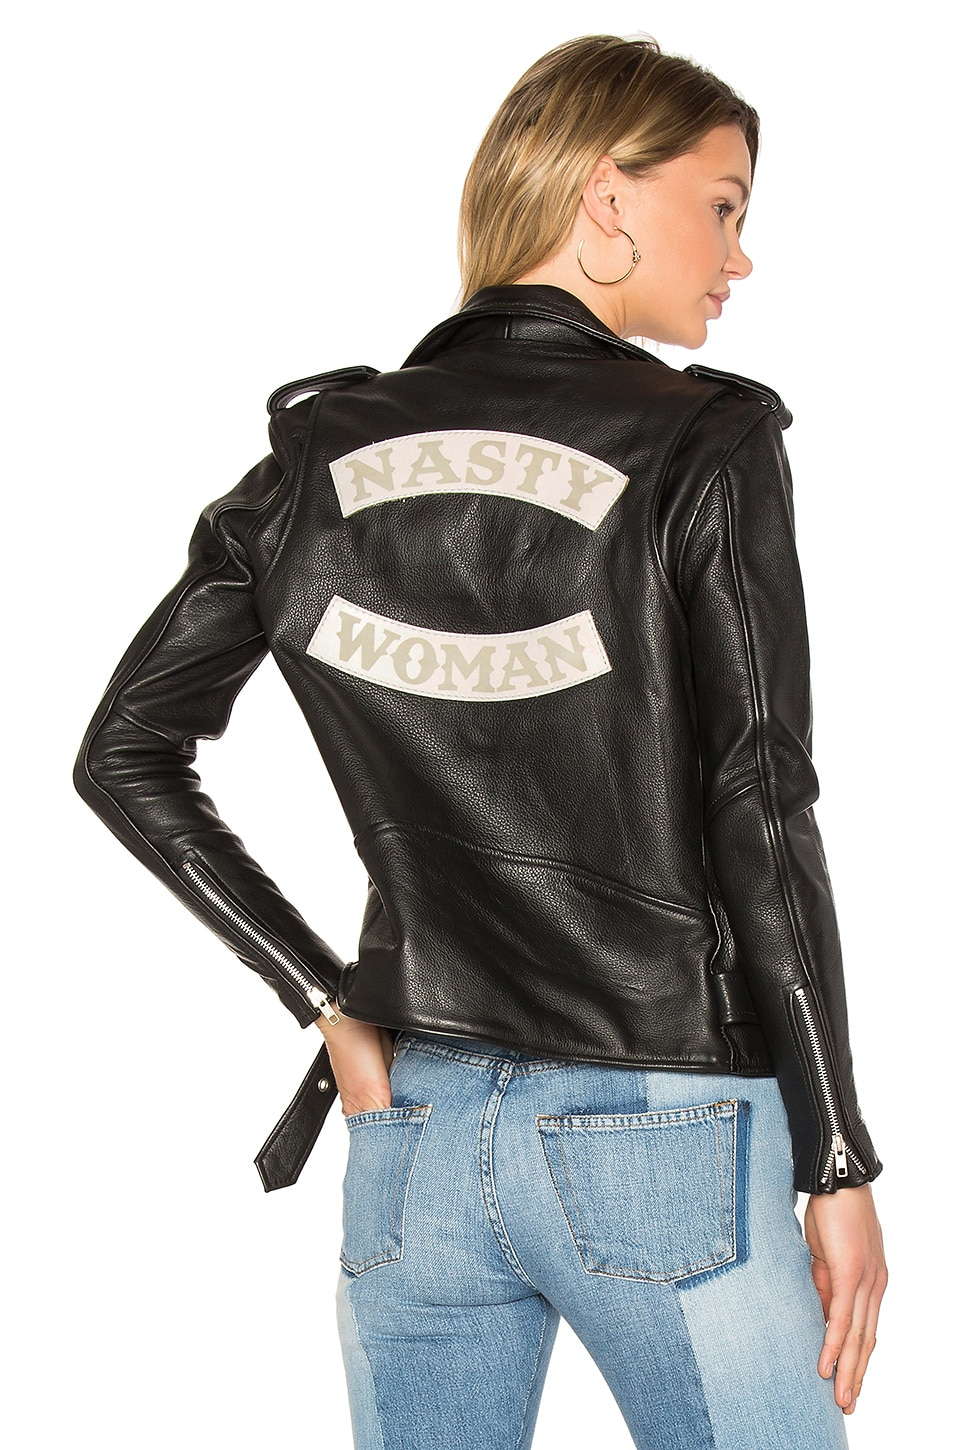 Understated Leather x REVOLVE Nasty Woman MC Club Jacket in Black